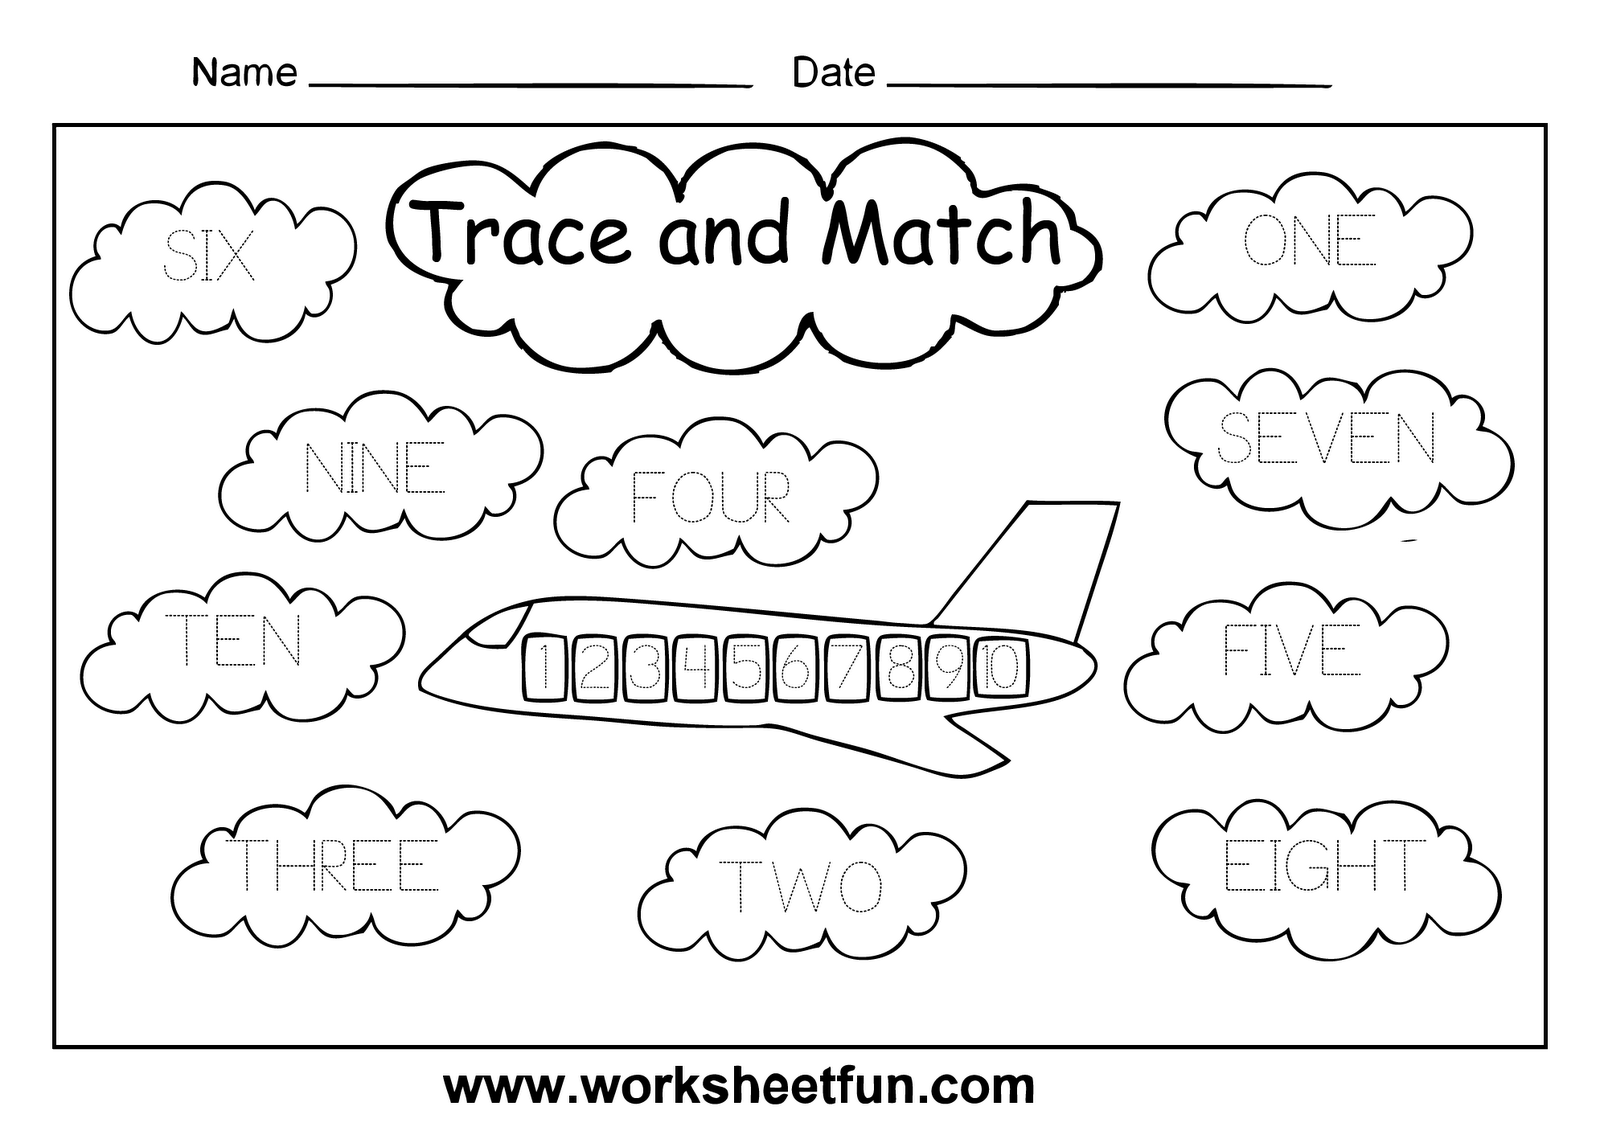 Weirdmailus  Personable Numbers Worksheet    Narrativamente With Fetching Th Grade Math Printable Worksheets Besides Percentage Worksheets Grade  Furthermore Energy Conversions Worksheet With Delightful Identify The Subject Of A Sentence Worksheet Also Interrogative Words In Spanish Worksheet In Addition Single Number Addition Worksheets And A Worksheets For Preschoolers As Well As Volume Practice Worksheet Additionally Pelvic Ultrasound Worksheet From Narrativamentecom With Weirdmailus  Fetching Numbers Worksheet    Narrativamente With Delightful Th Grade Math Printable Worksheets Besides Percentage Worksheets Grade  Furthermore Energy Conversions Worksheet And Personable Identify The Subject Of A Sentence Worksheet Also Interrogative Words In Spanish Worksheet In Addition Single Number Addition Worksheets From Narrativamentecom